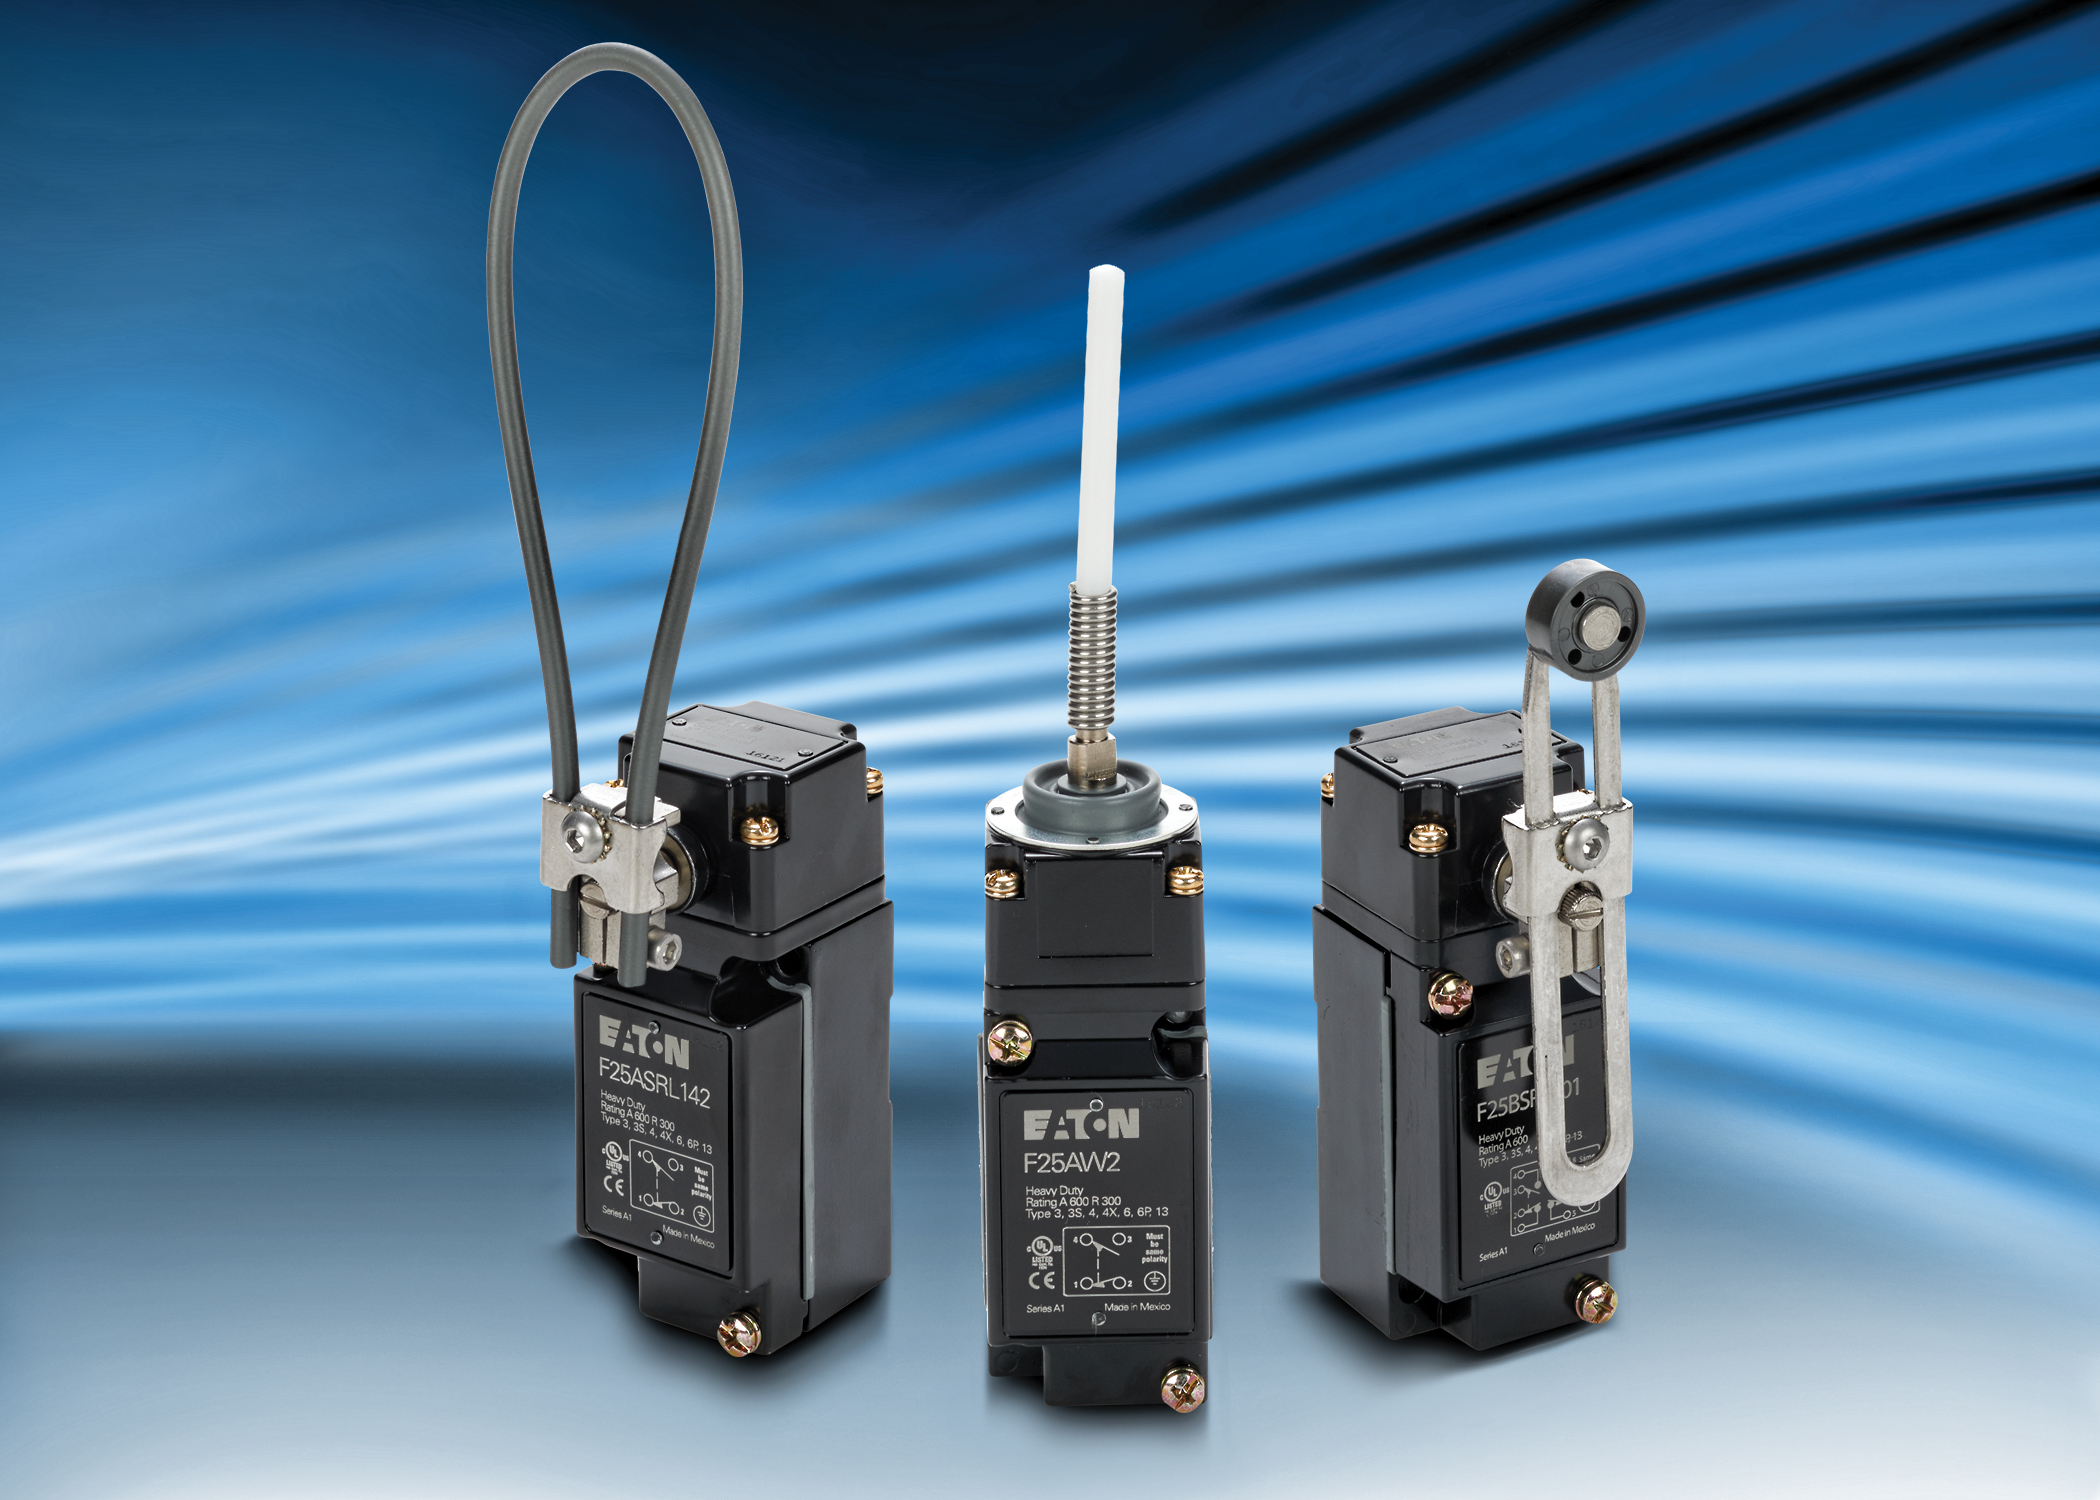 Automationdirect Adds Nema Rated Limit Switches From Eaton